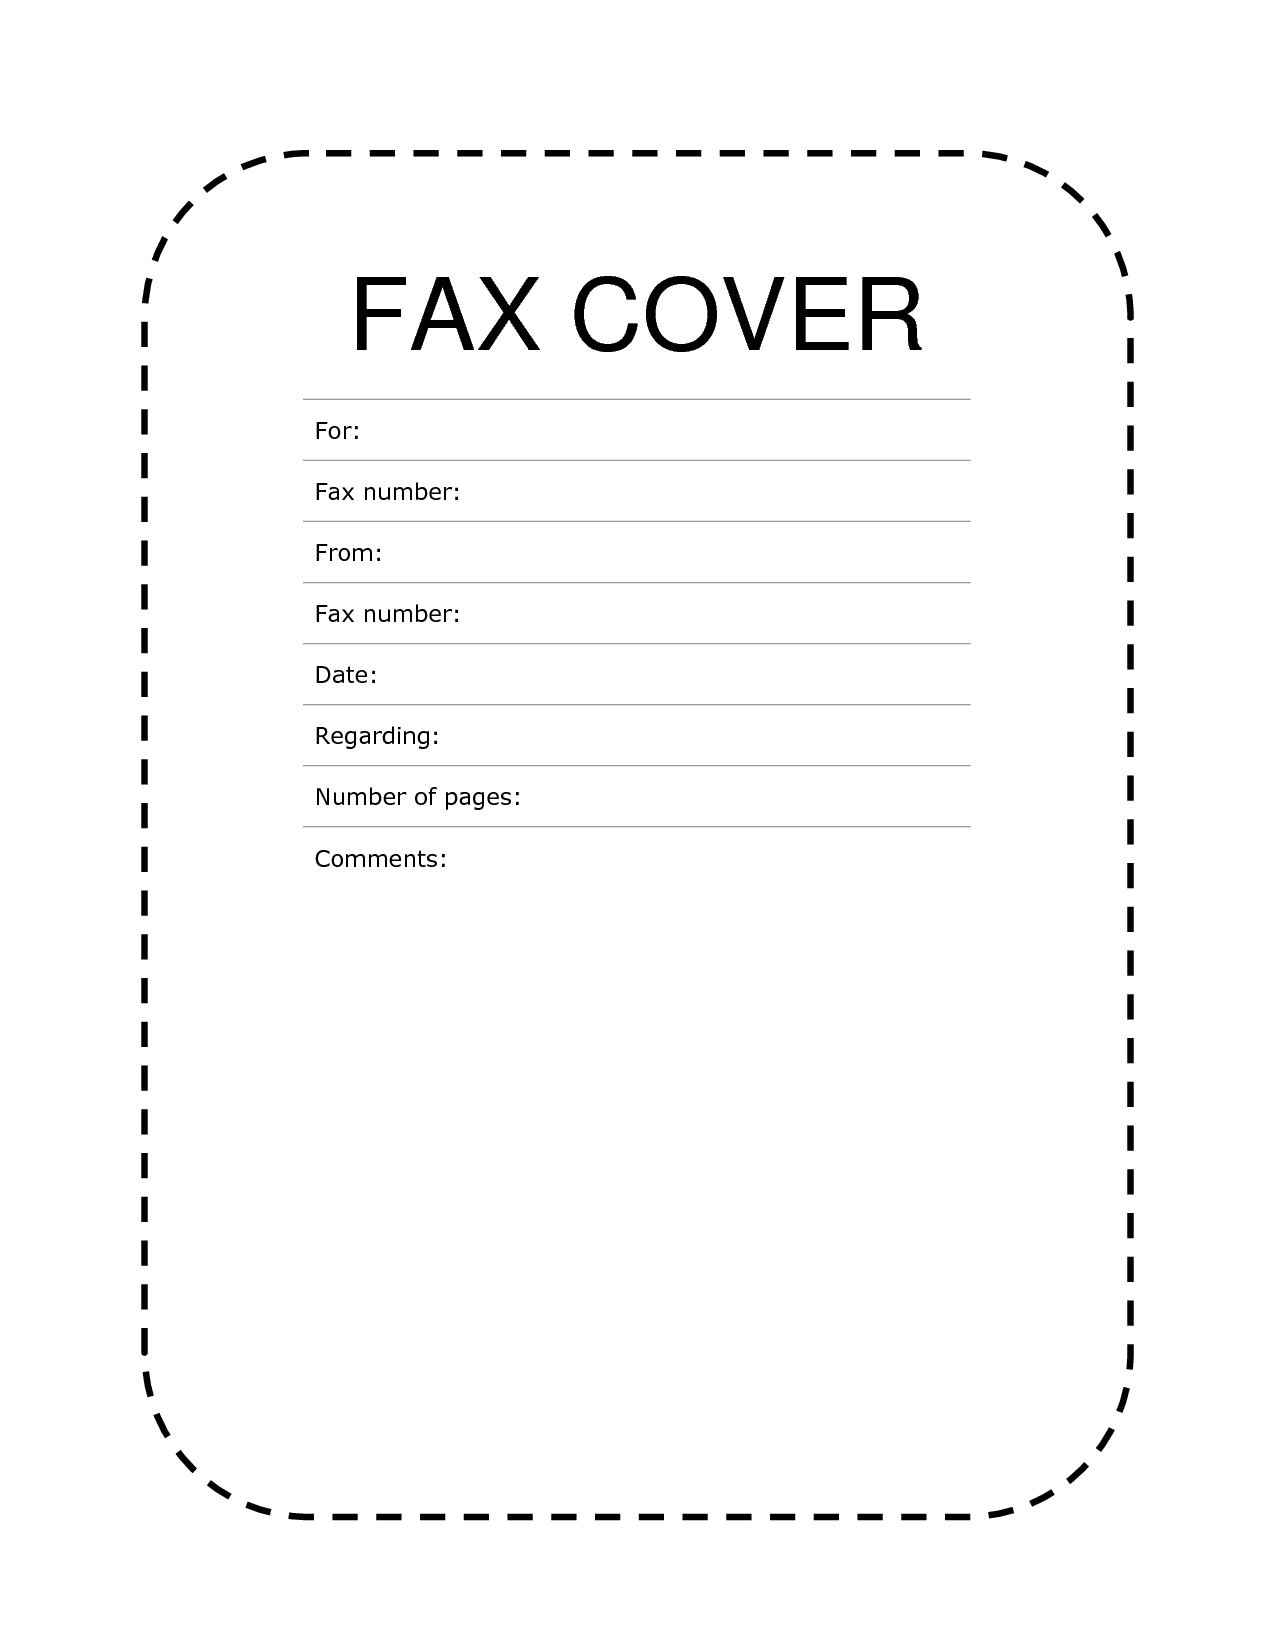 Free Fax Cover Sheet Template Download | This Site Provides - Free Printable Fax Cover Sheet Pdf